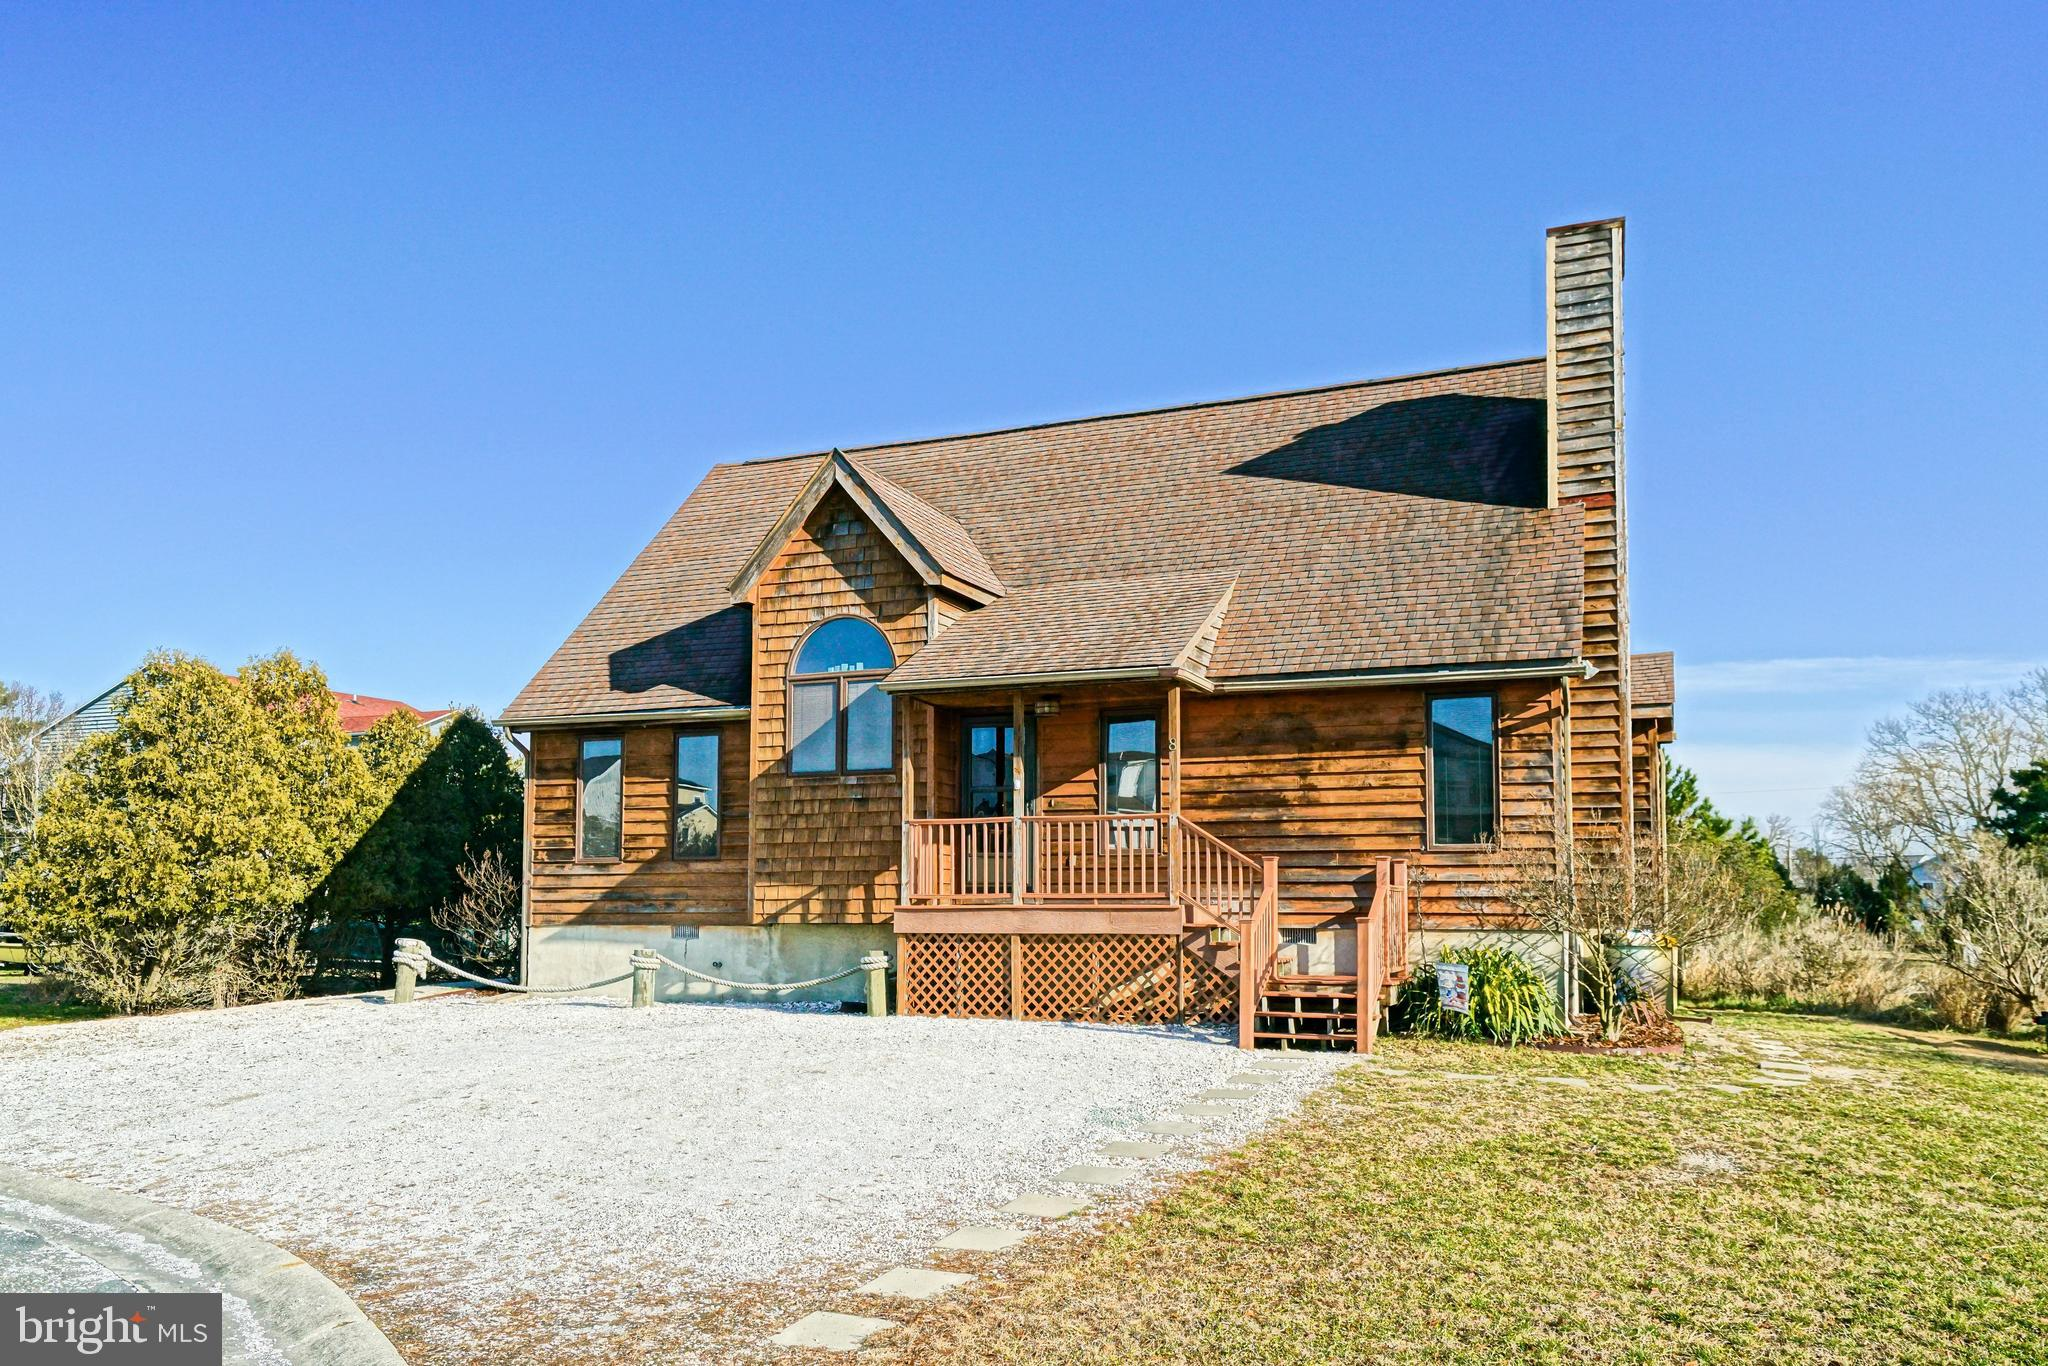 TRADITIONAL LEWES BEACH HOUSE! This elevated 3-bedroom, 2 bath beach house is the perfect vacation,